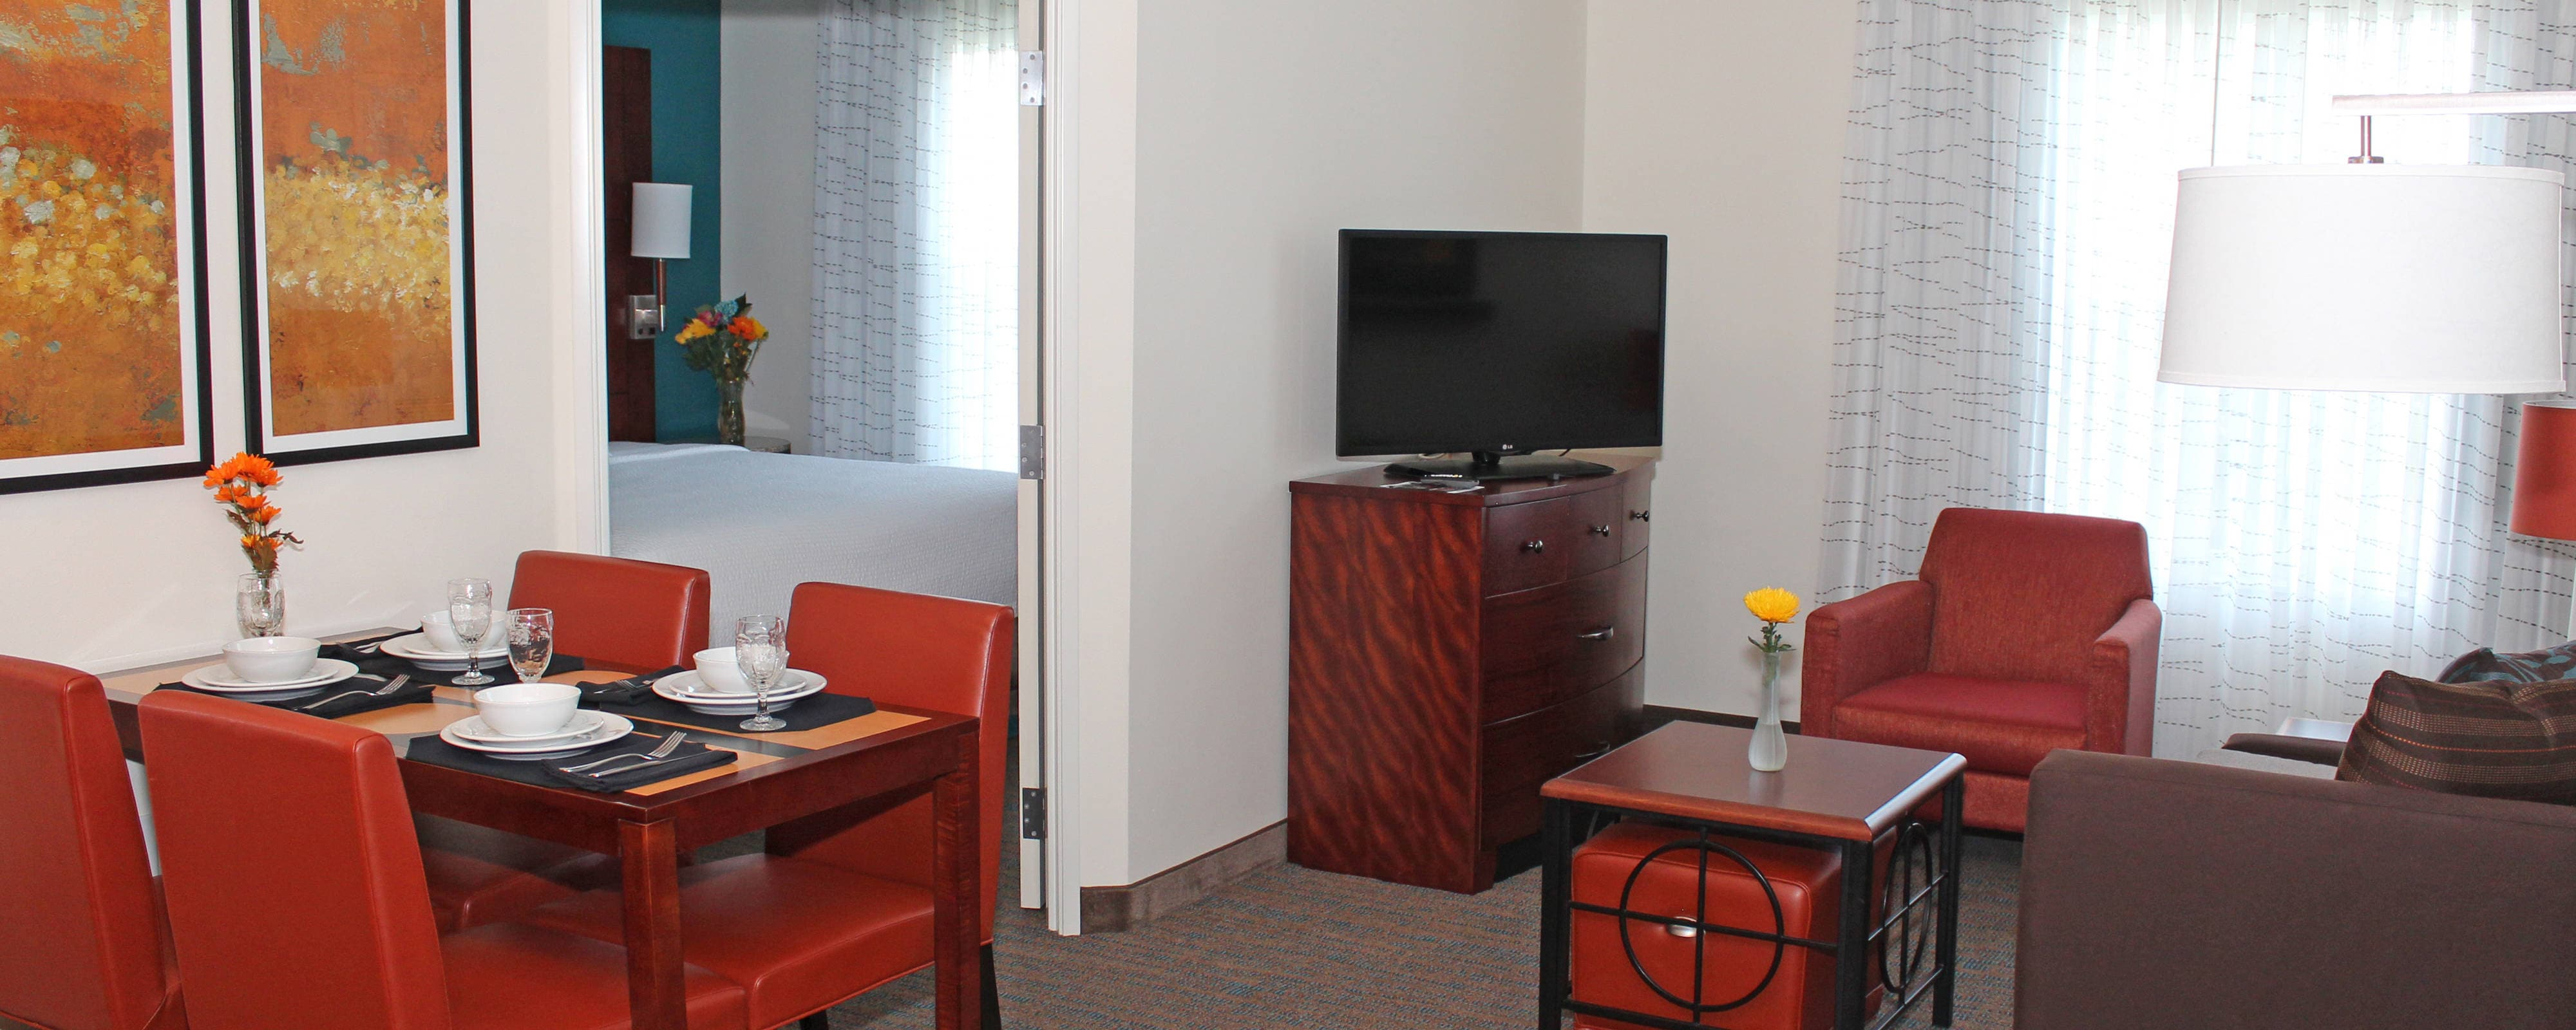 Residence Inn Sebring Two-Bedroom Suite